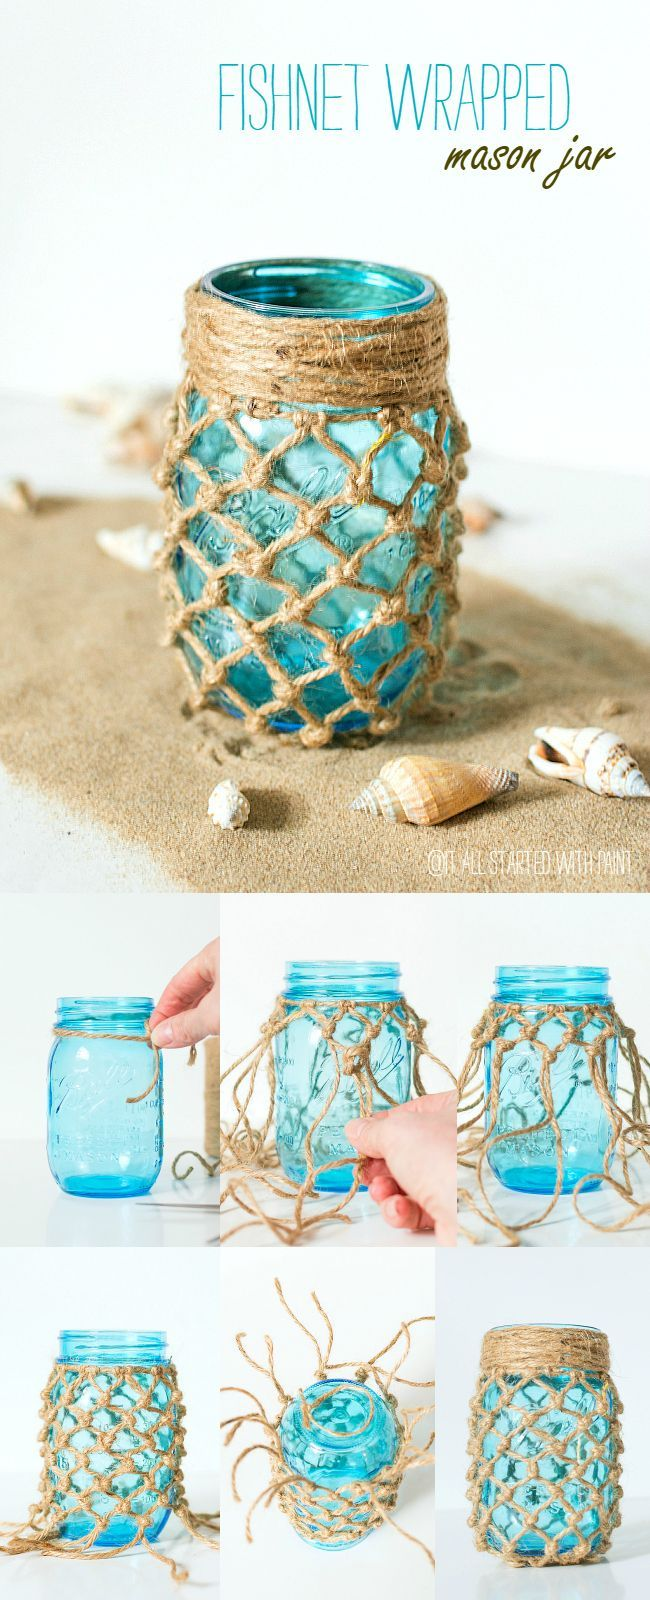 DIY: Fishnet Wrapped Mason Jar Craft